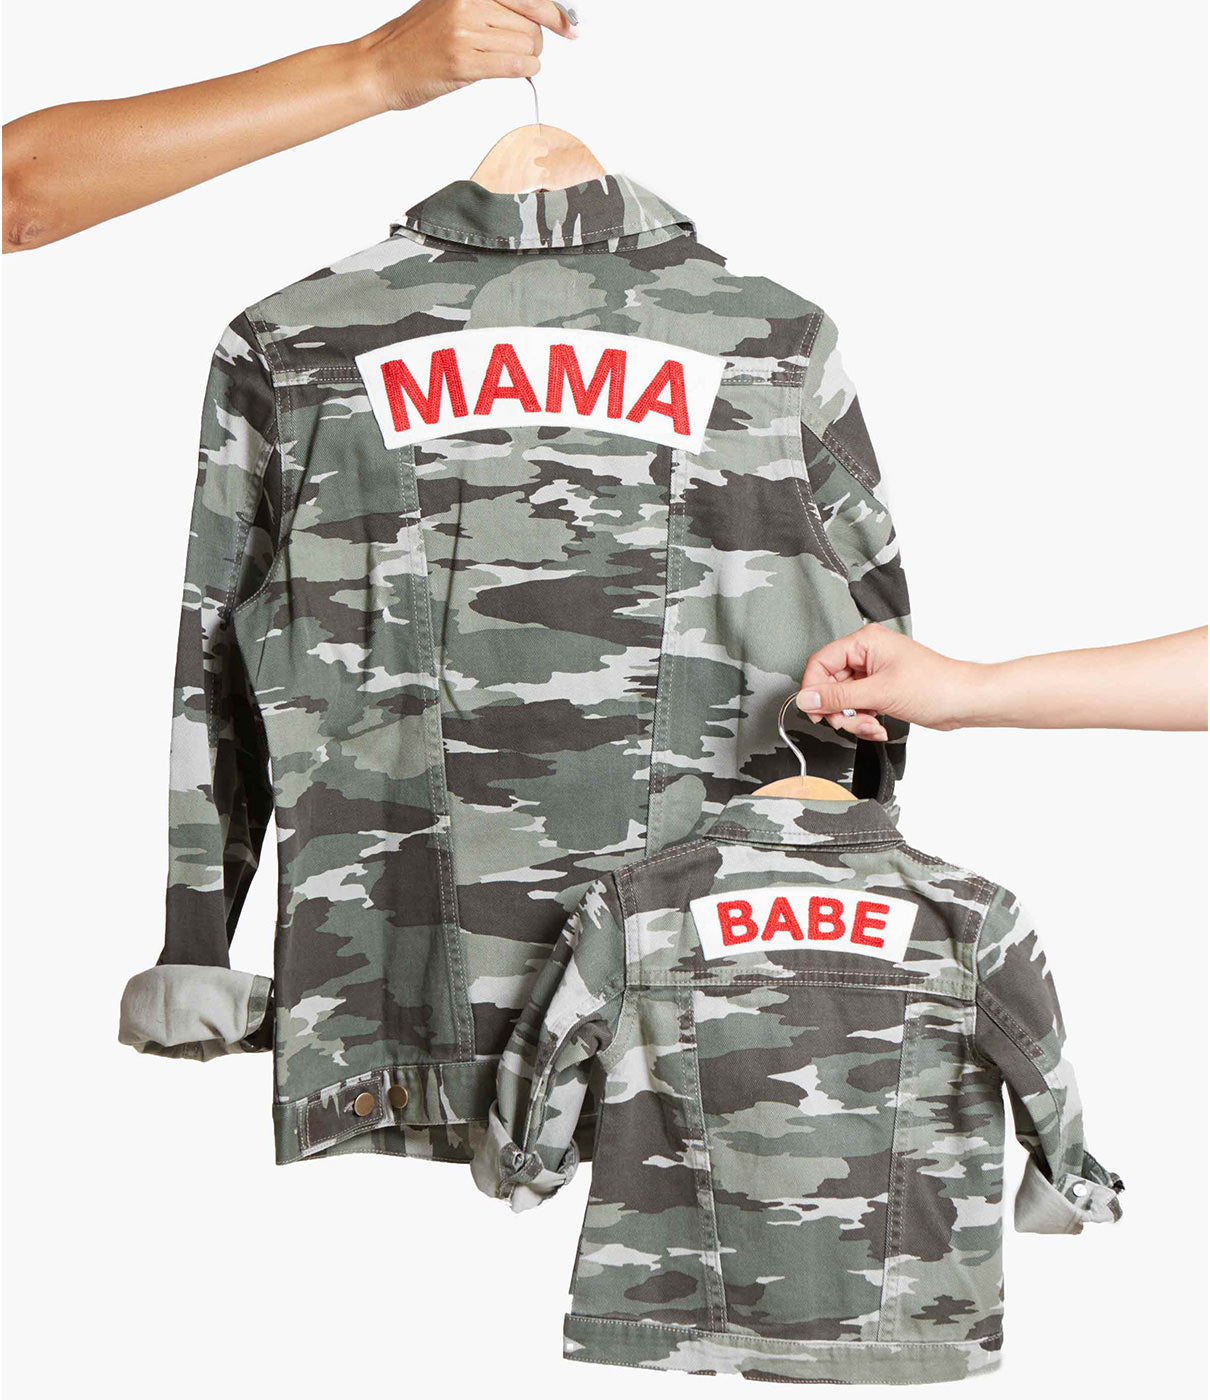 MAKE IT A PAIRCheck out our BABE jacket for an adorable mommy-and-me look.